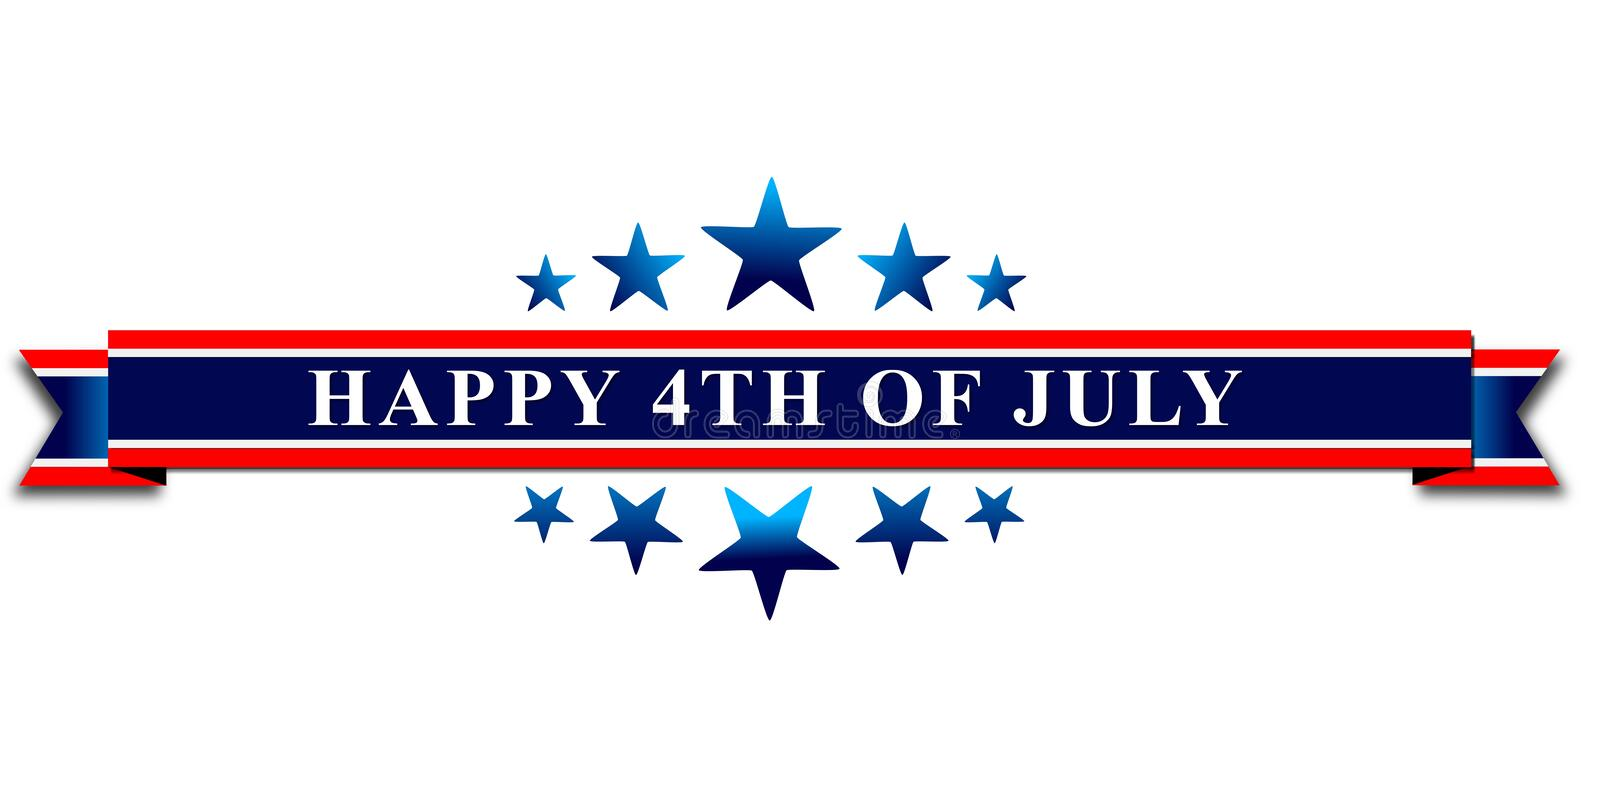 Happy 4th Of July USA Independence Day royalty free illustration